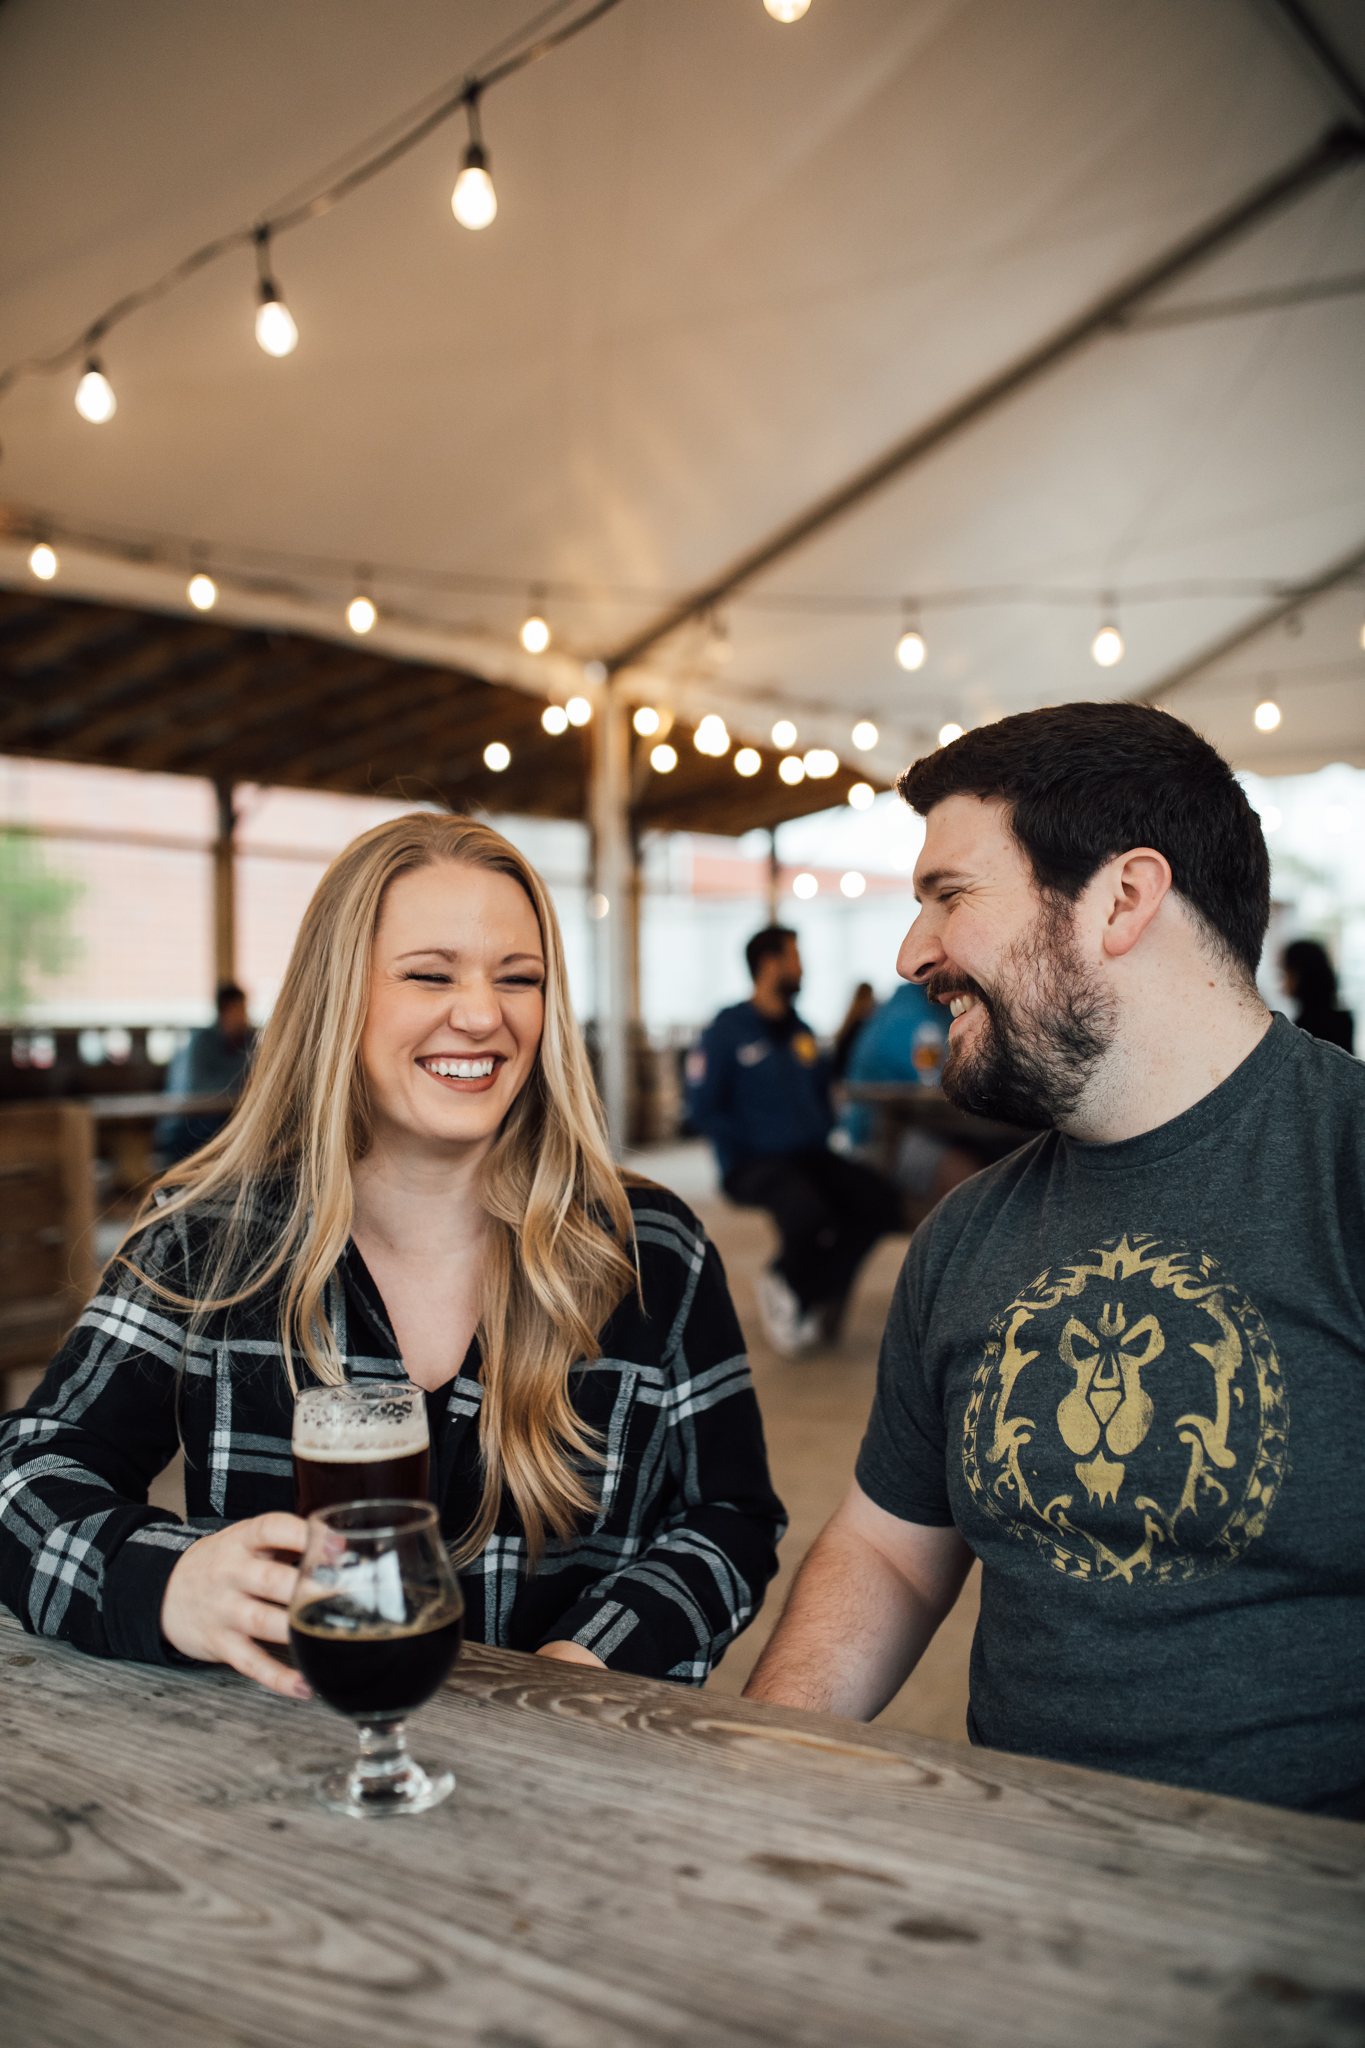 wiseacre-brewing-wedding-photographer-the-warmth-around-you-cassie-cook-photography (4 of 64).jpg